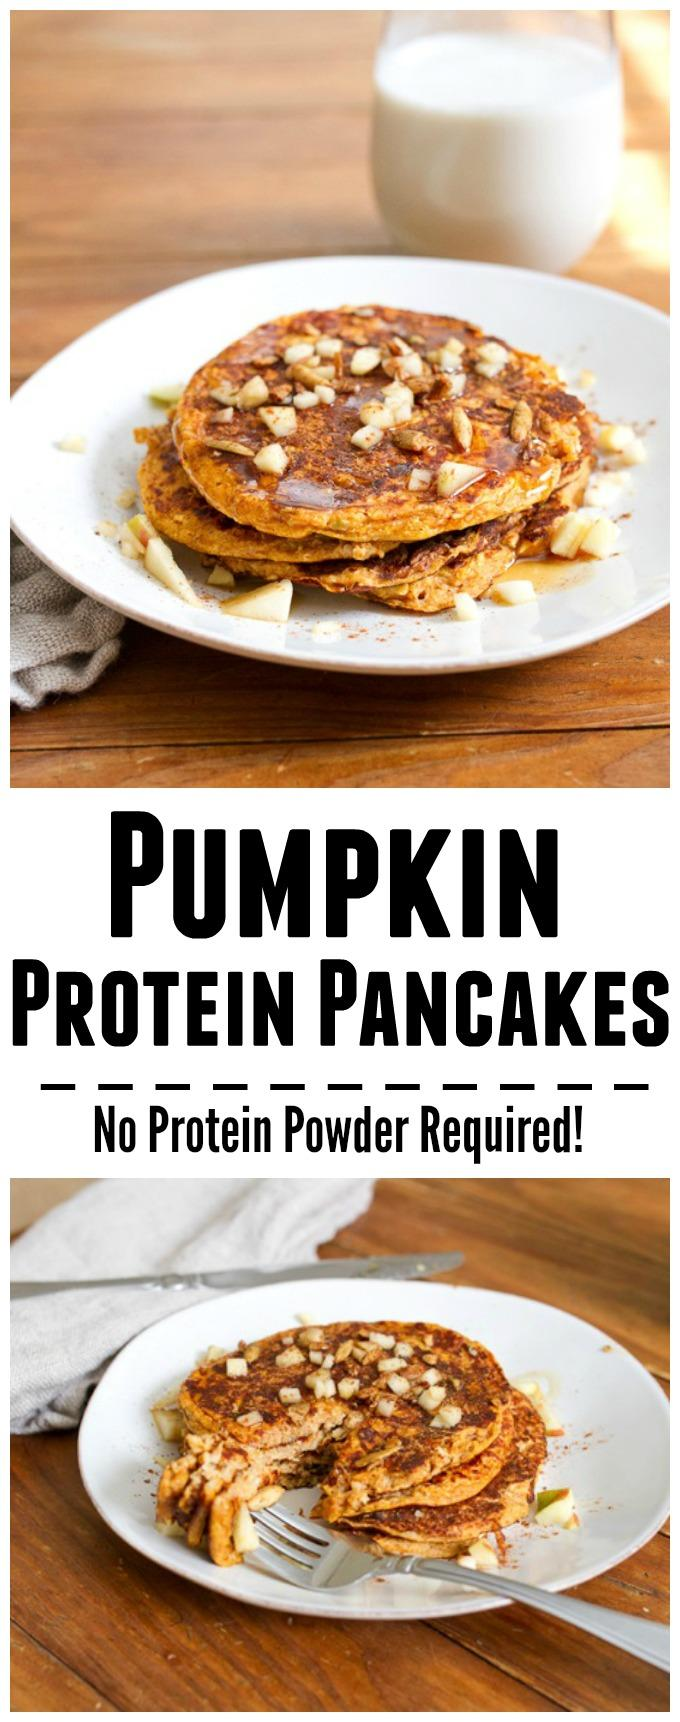 No protein powder needed in this recipe for Pumpkin Protein Pancakes! Enjoy a batch for breakfast or a snack on a busy day!